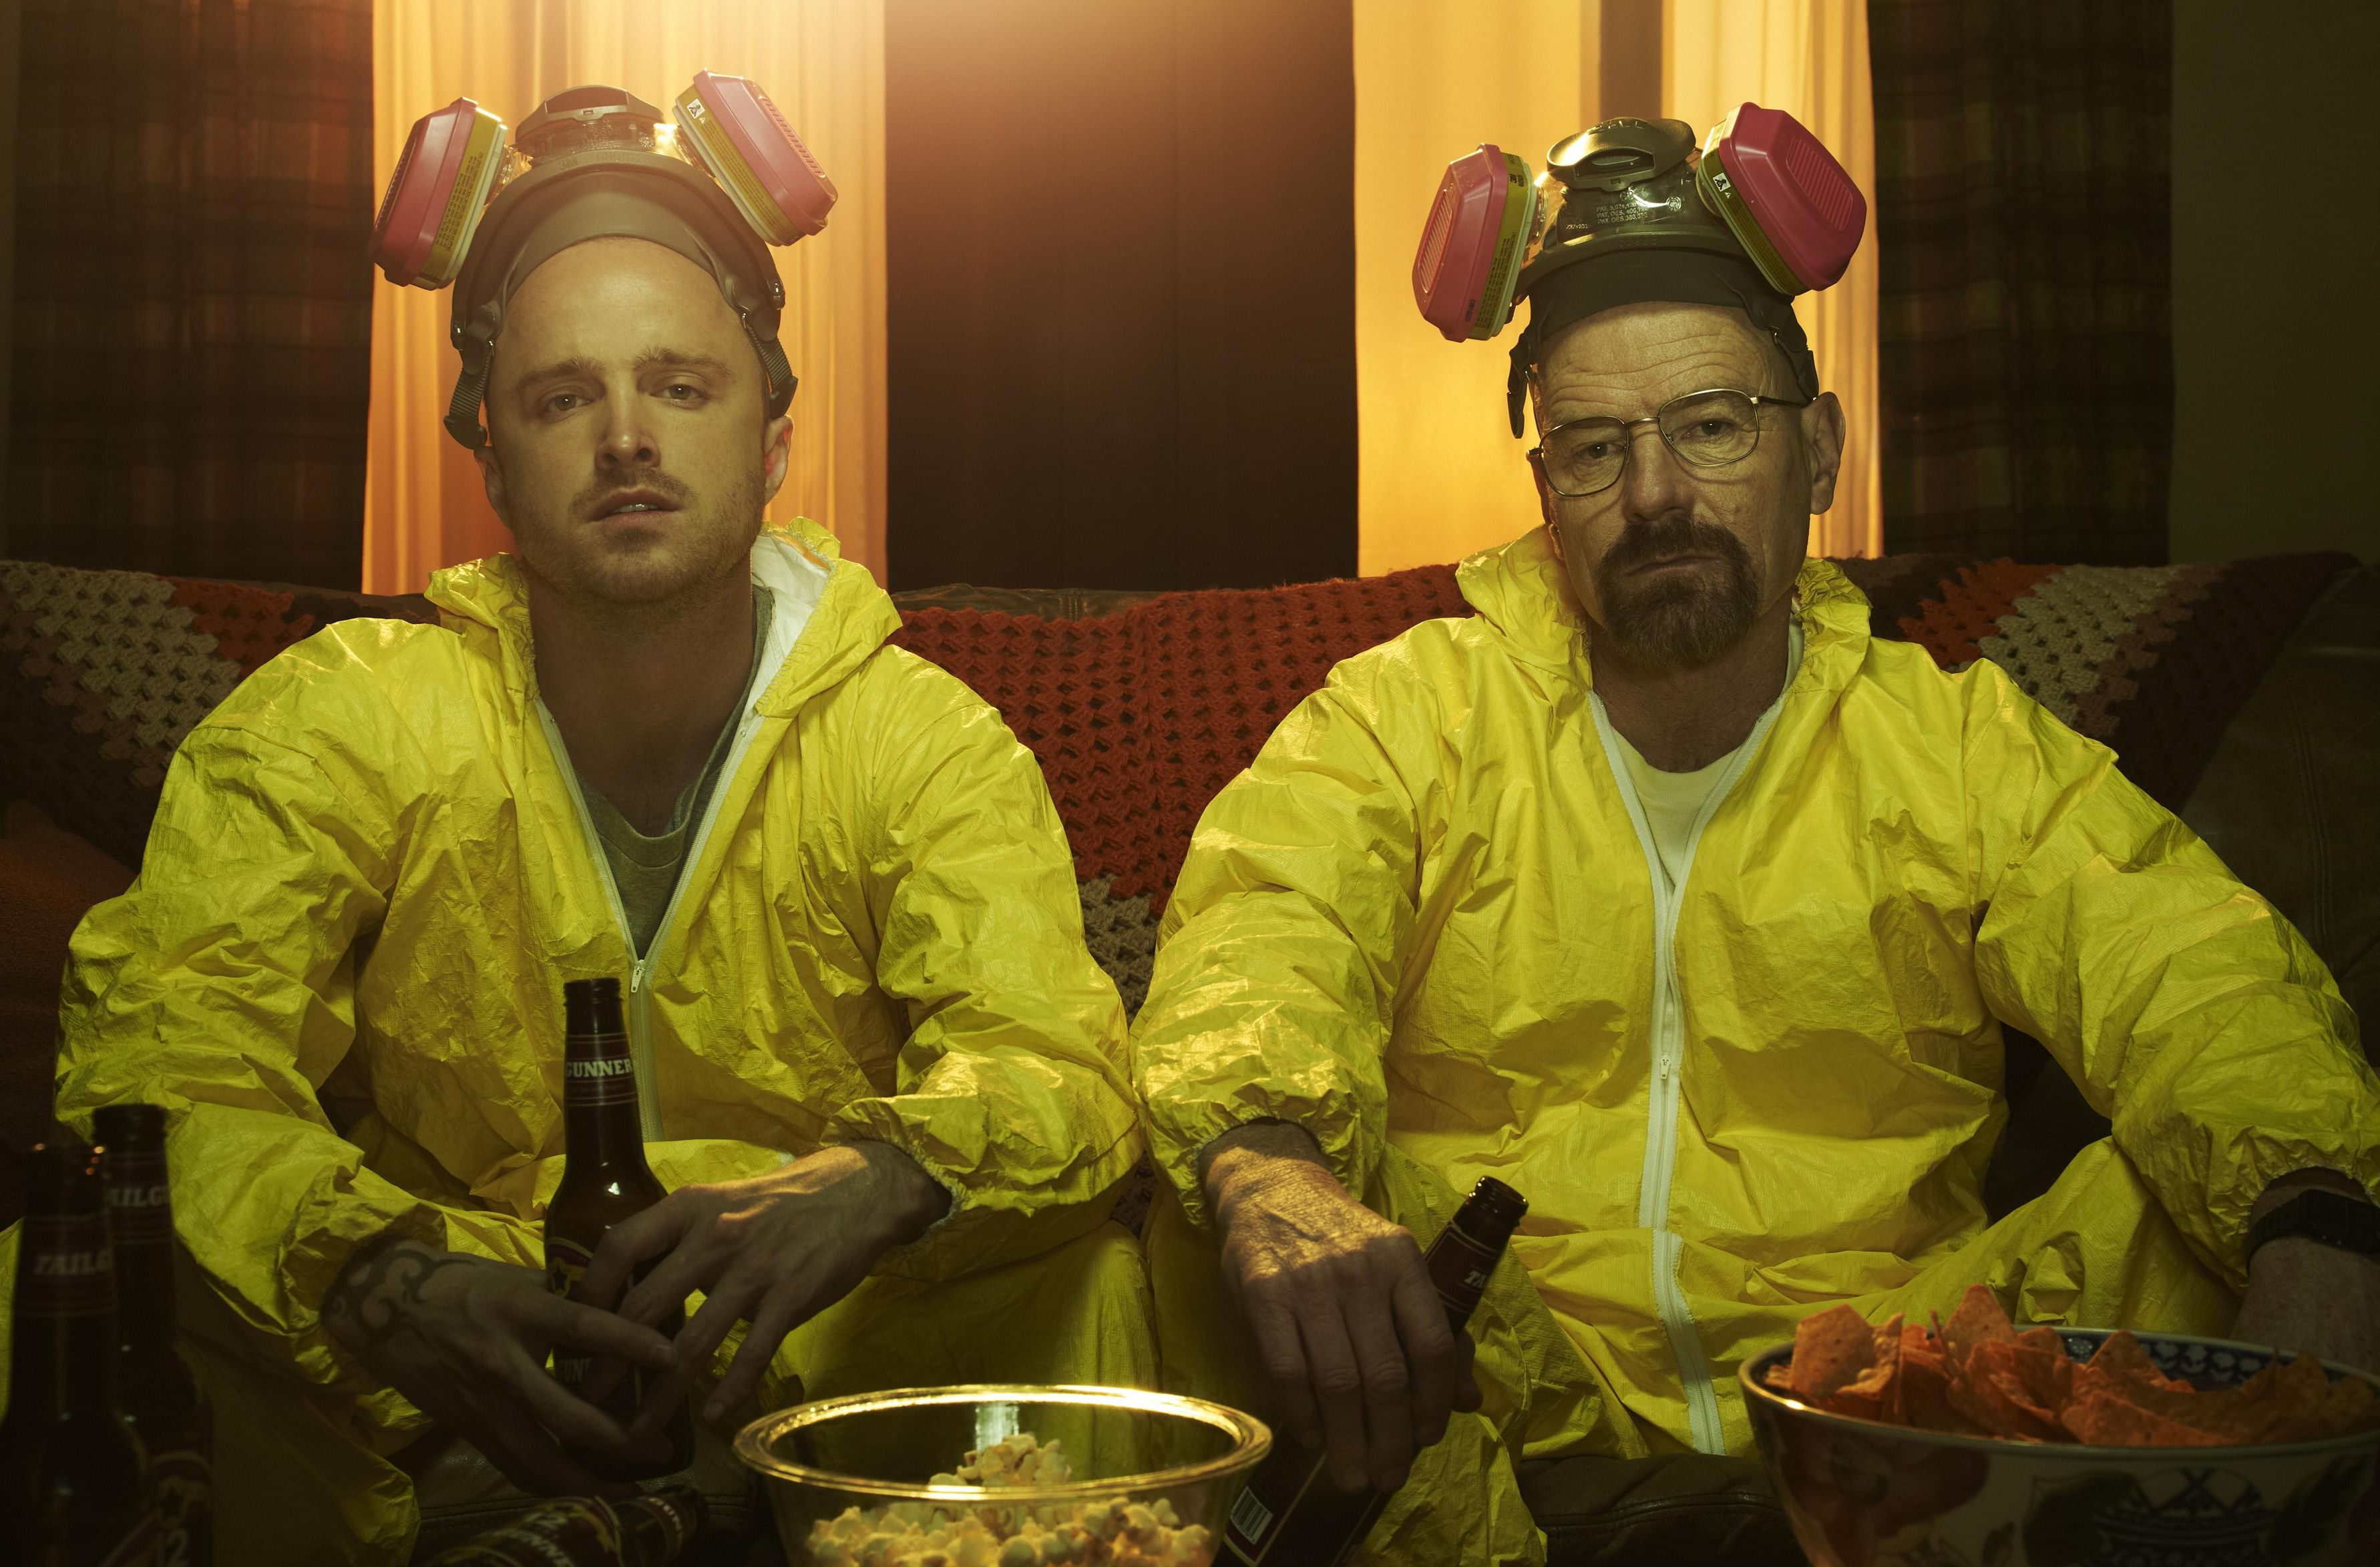 Walter and Jesse have a beer after cooking - Breaking Bad